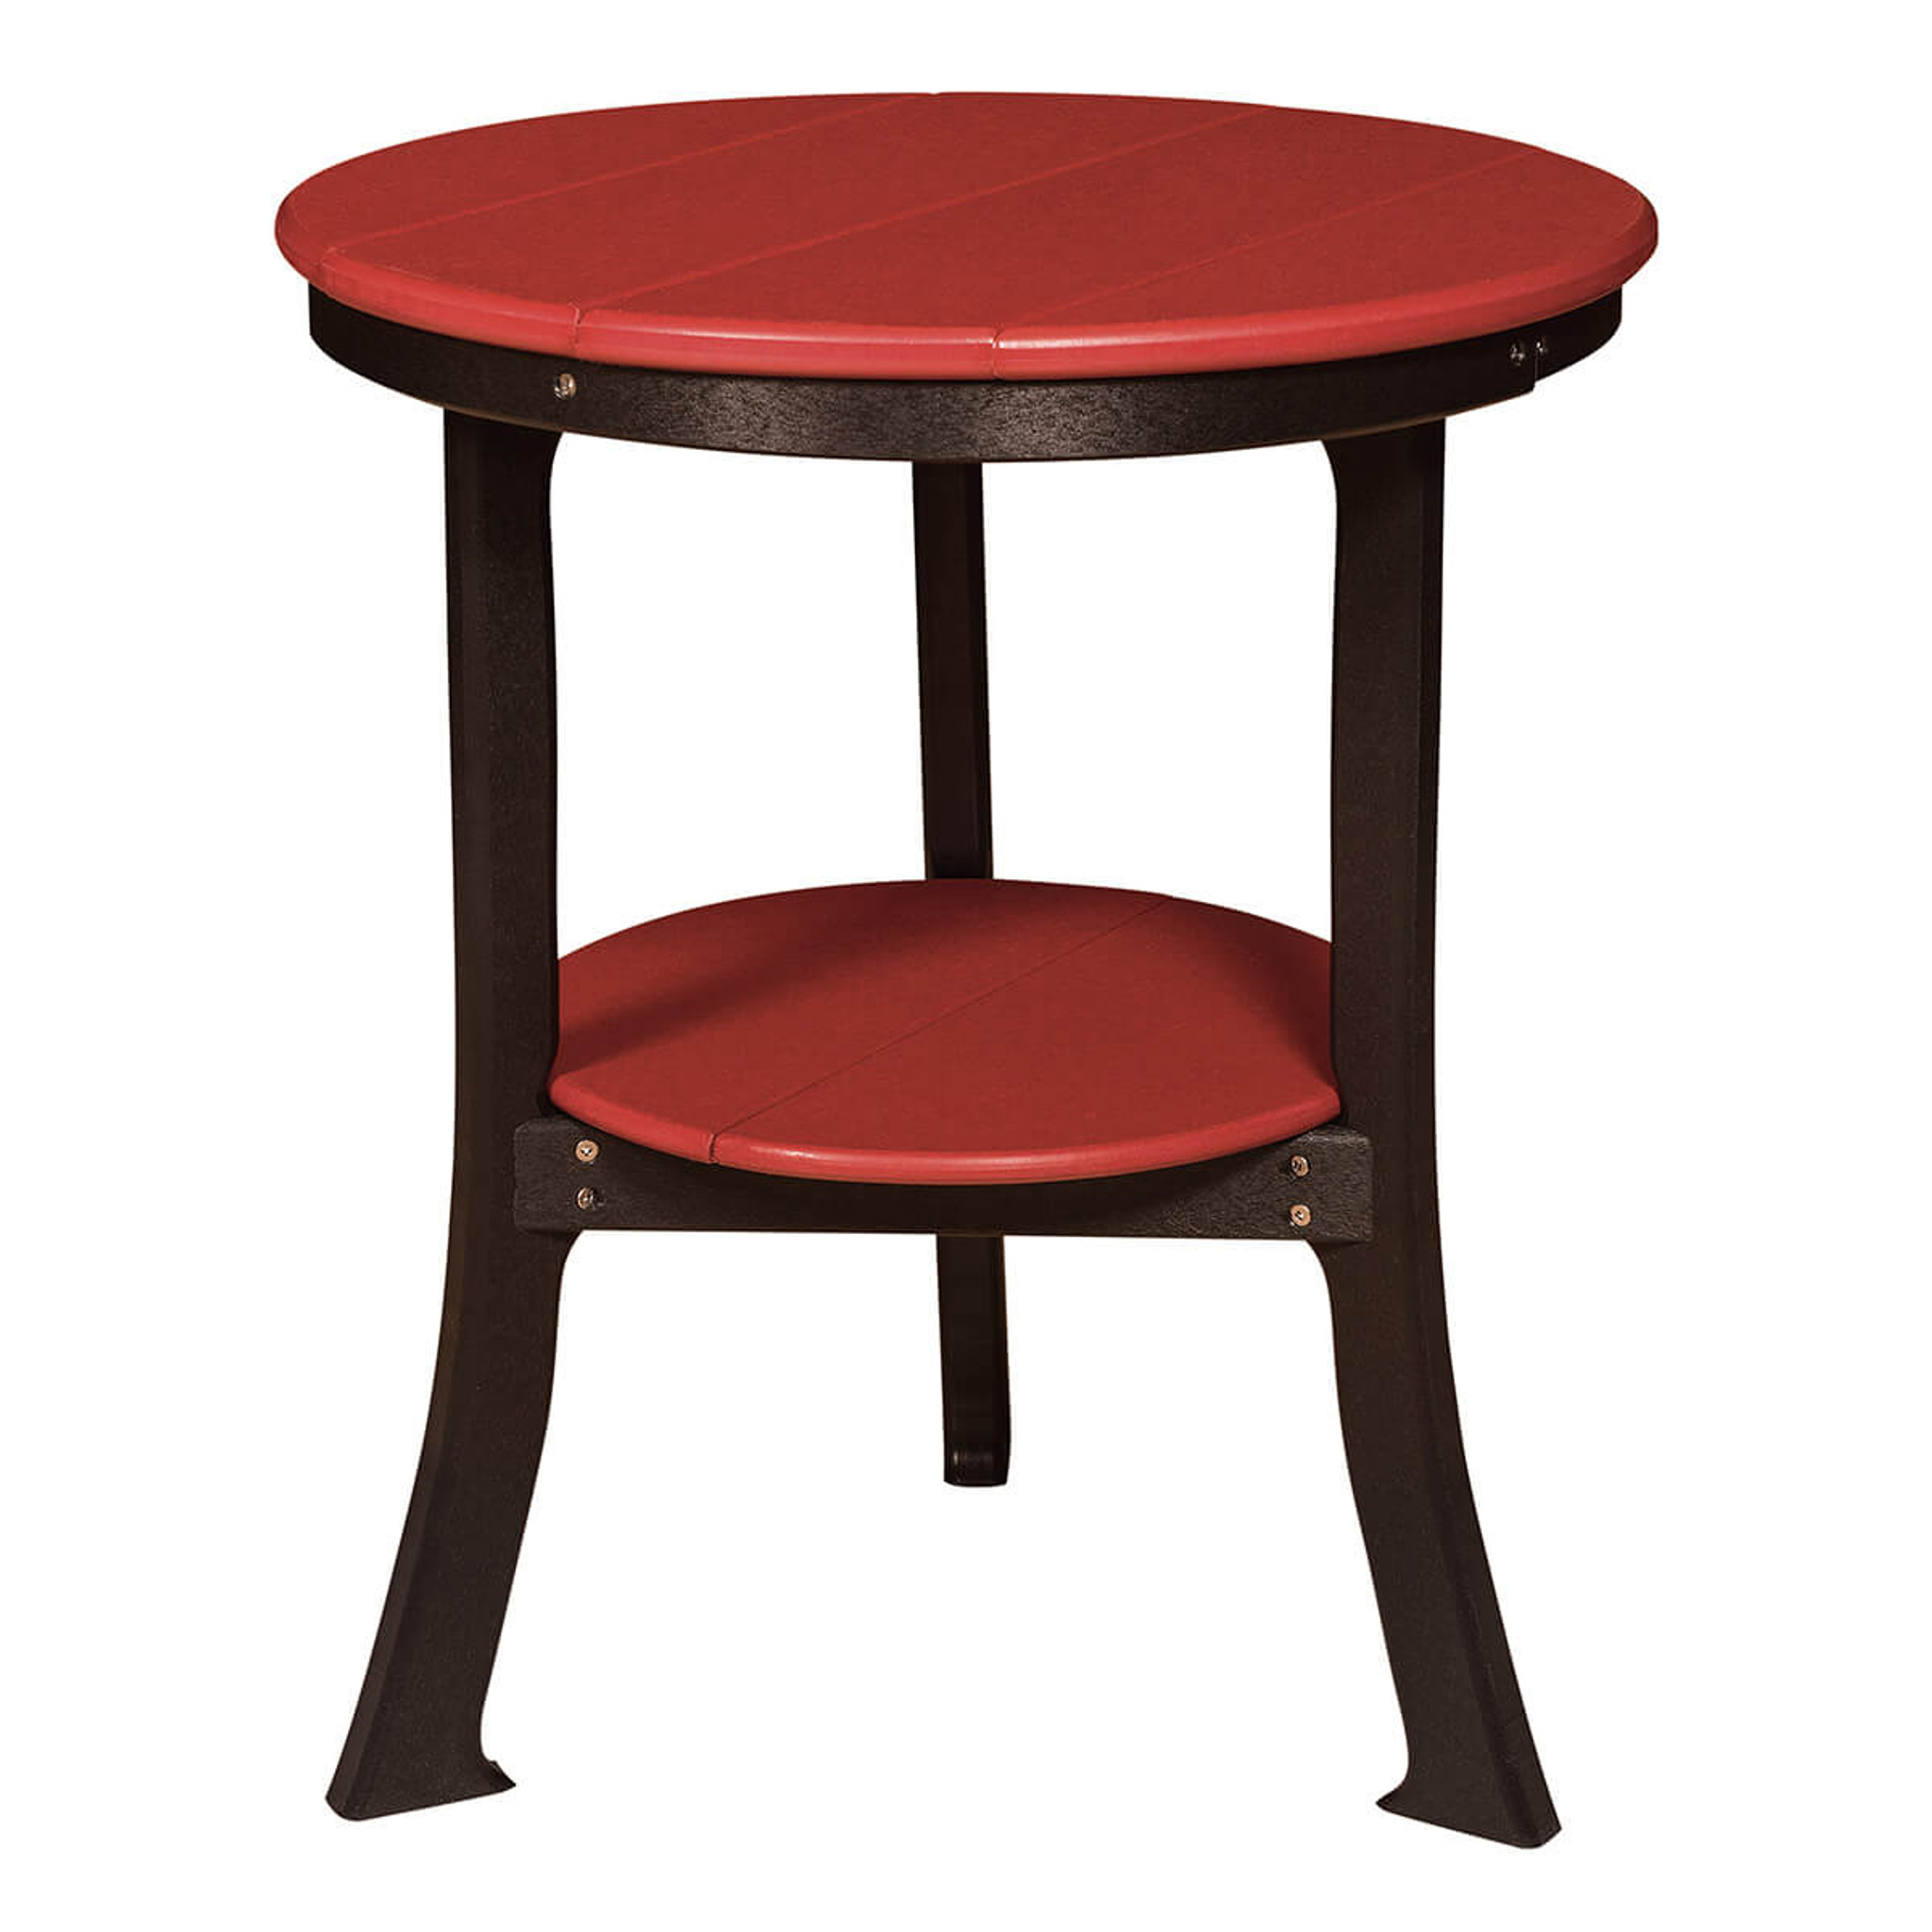 Polywood End Table Round Mattie Lu - Round end table with doors